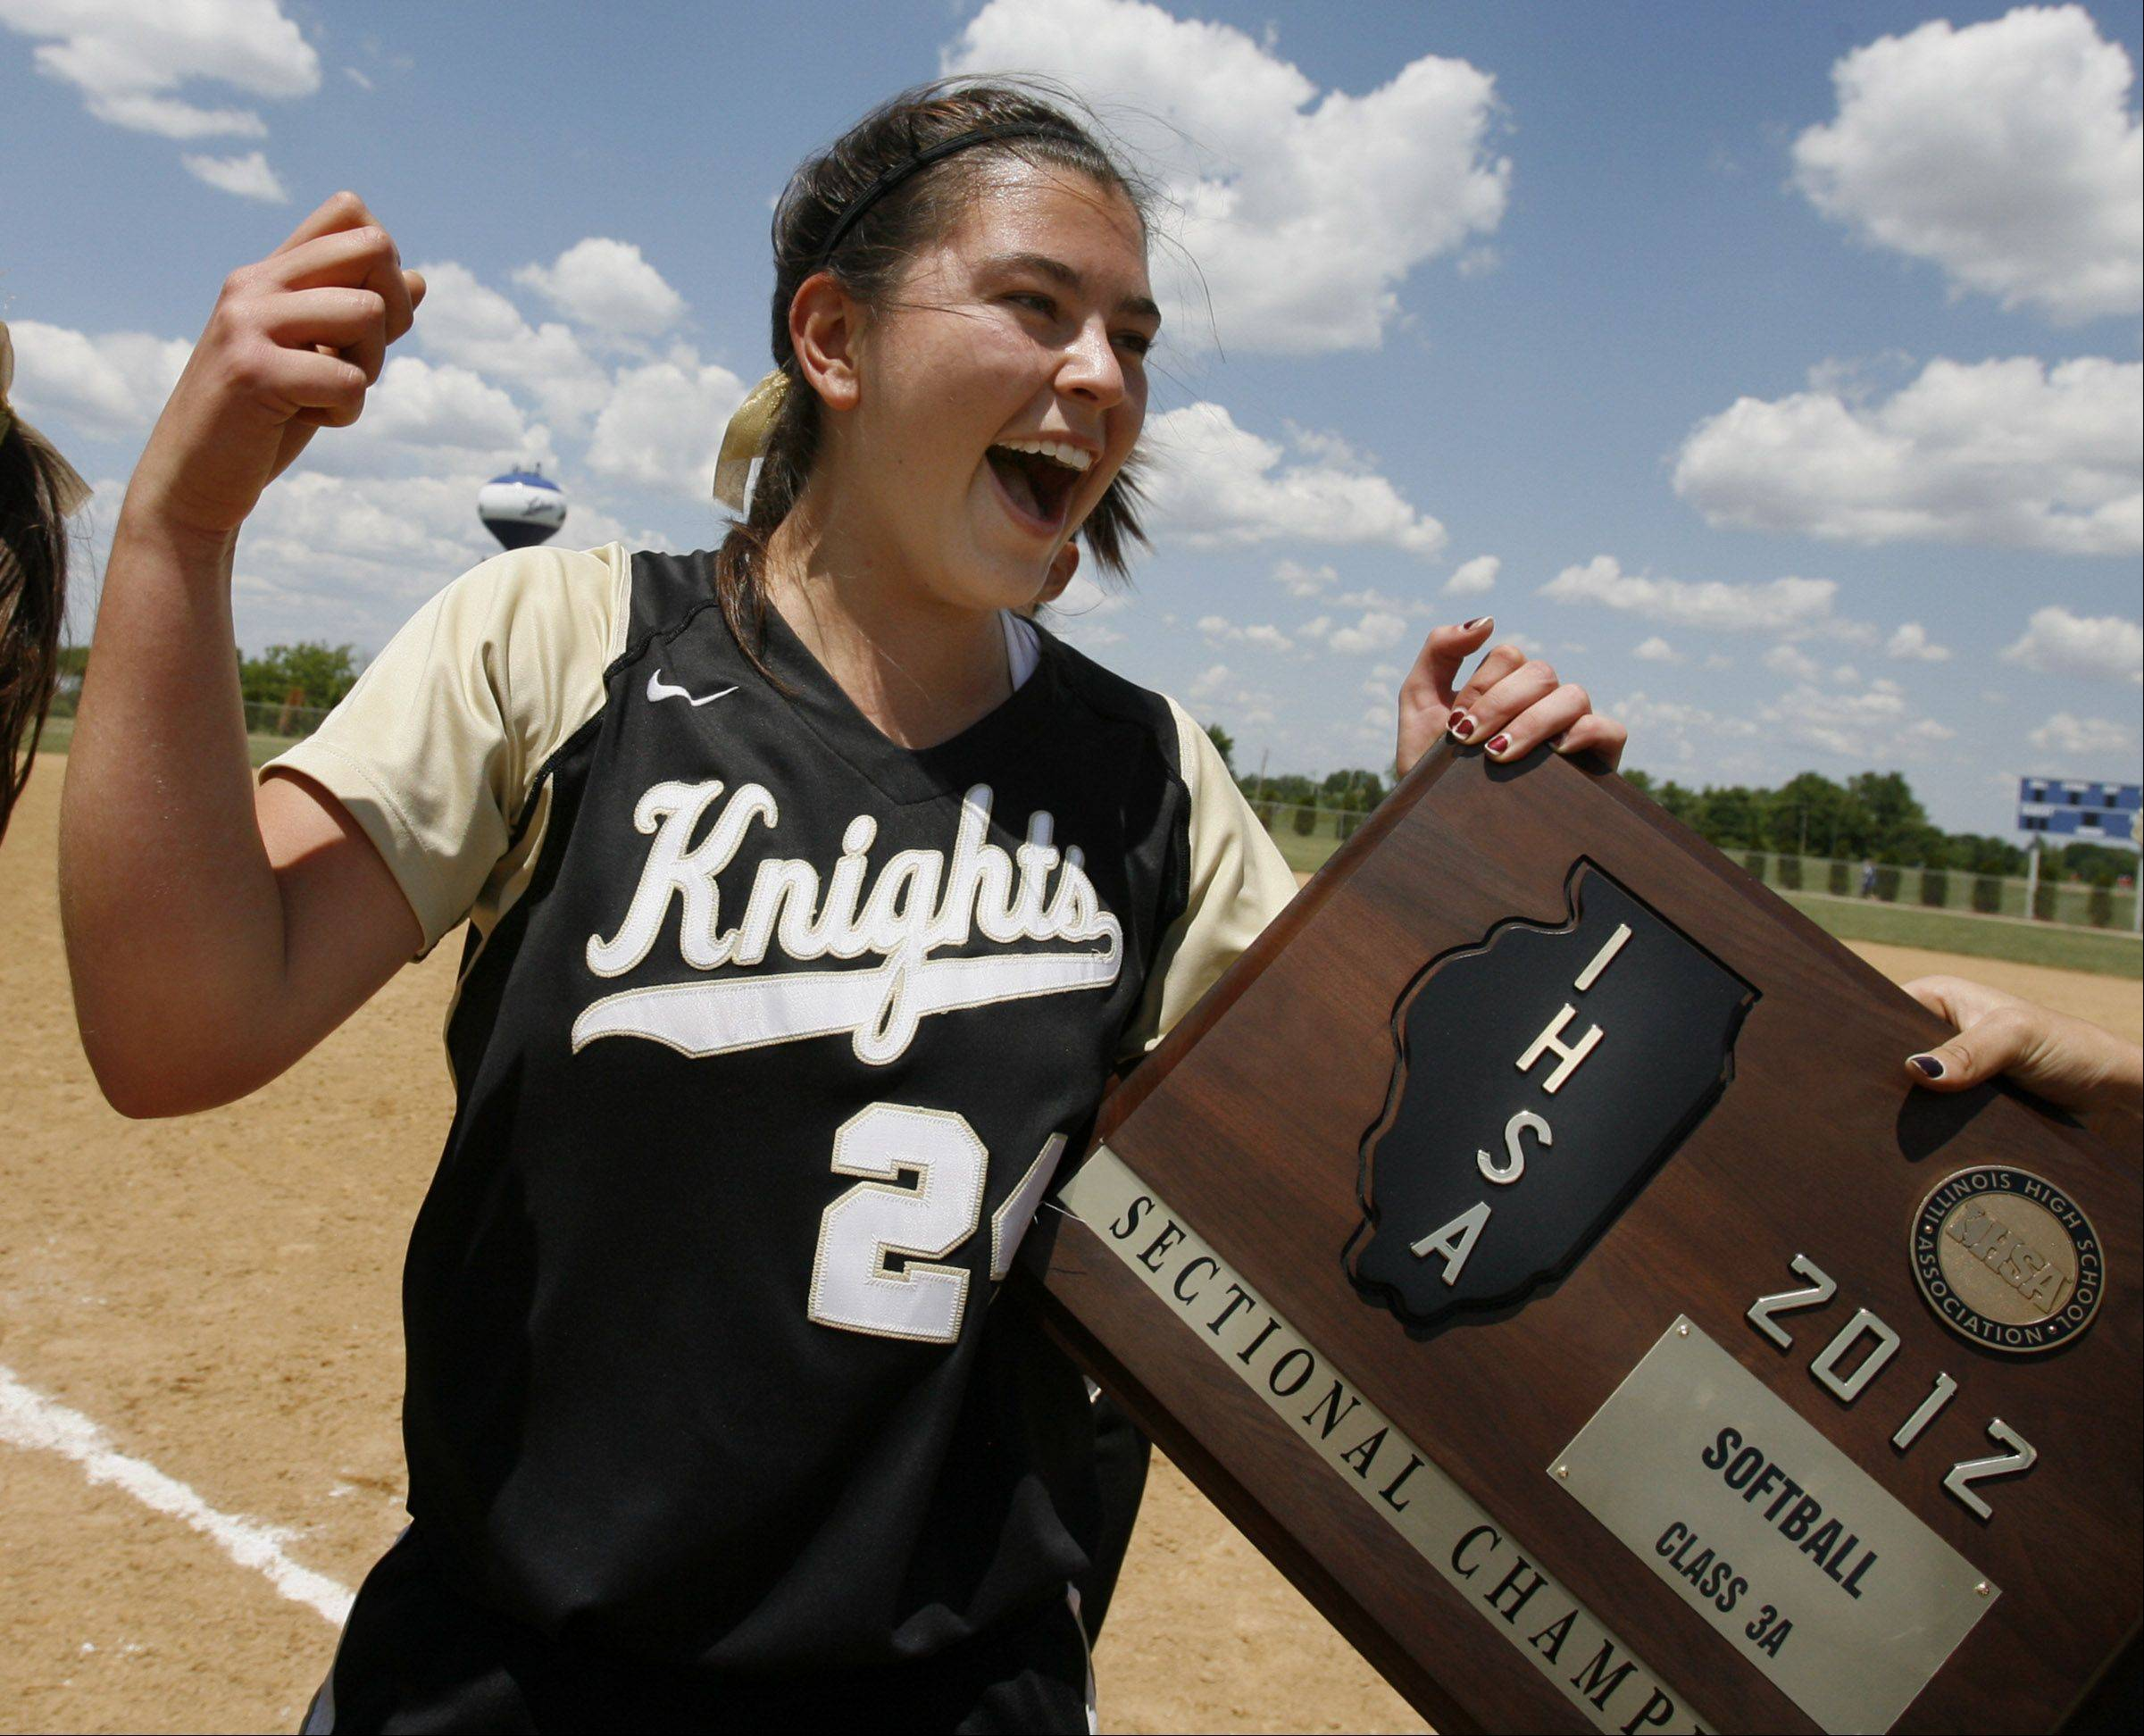 Grayslake North pitcher Kristina Gandy, celebrates winning Class 3A Lakes softball sectional final against Prairie Ridge in Lake Villa on Saturday.